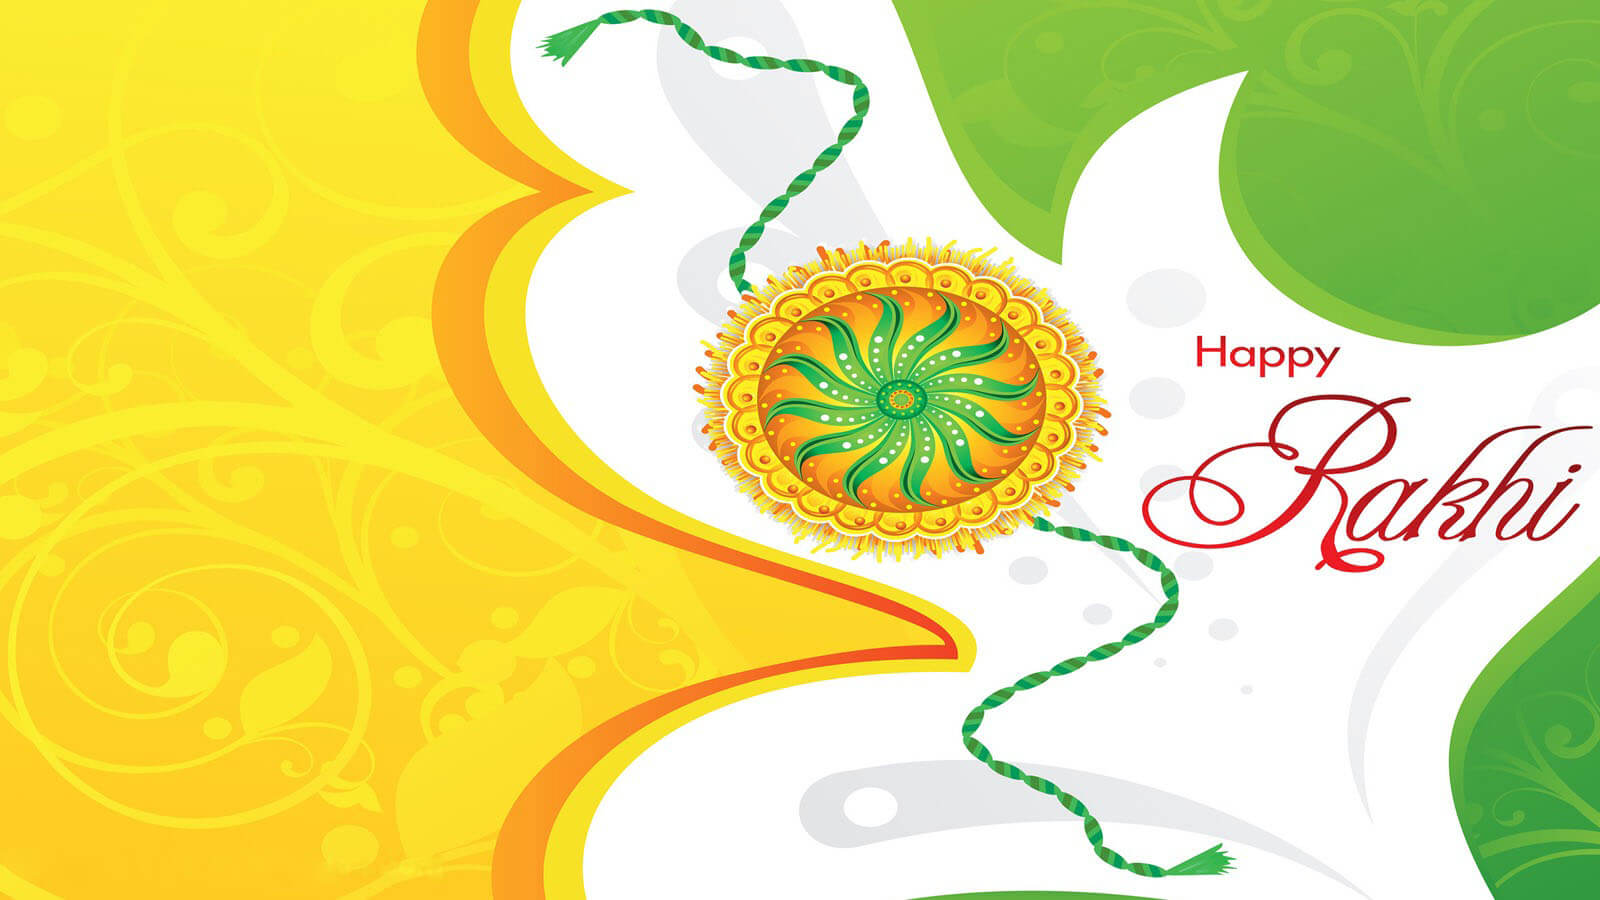 happy rakhi raksha bandhan greetings hd pc wallpaper